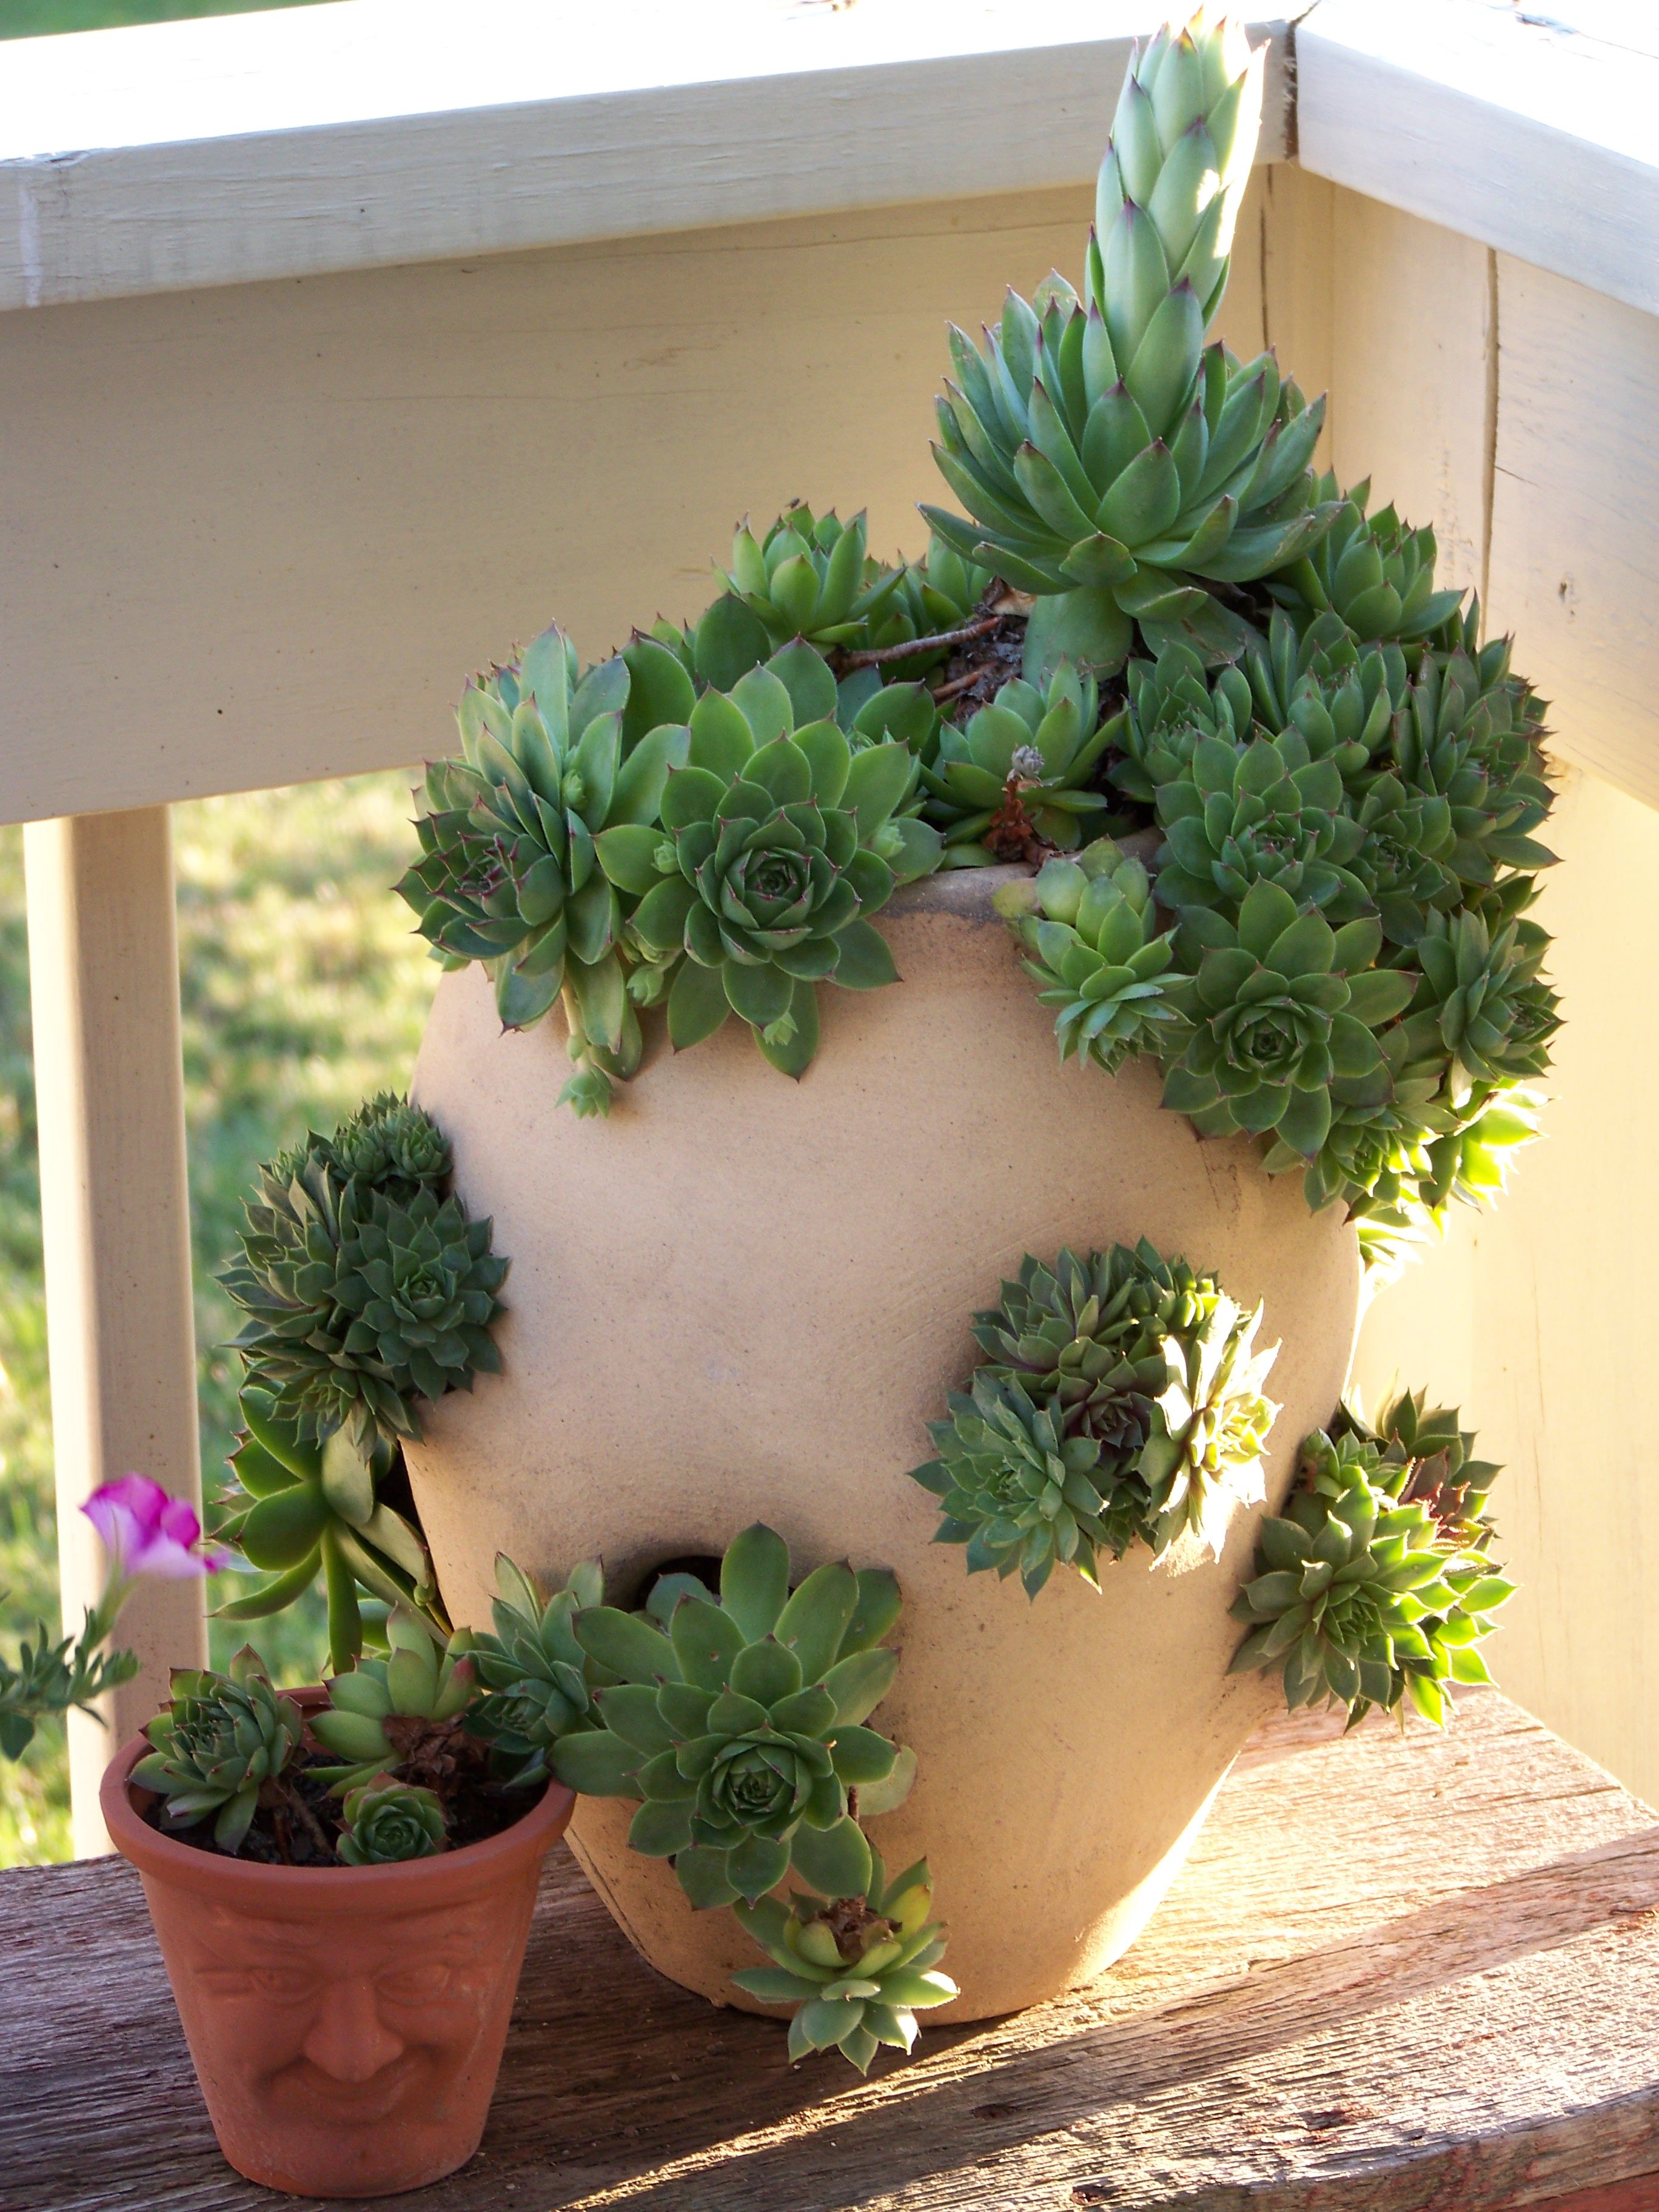 Planting Hens And Chicks In Strawberry Pots Is A Great